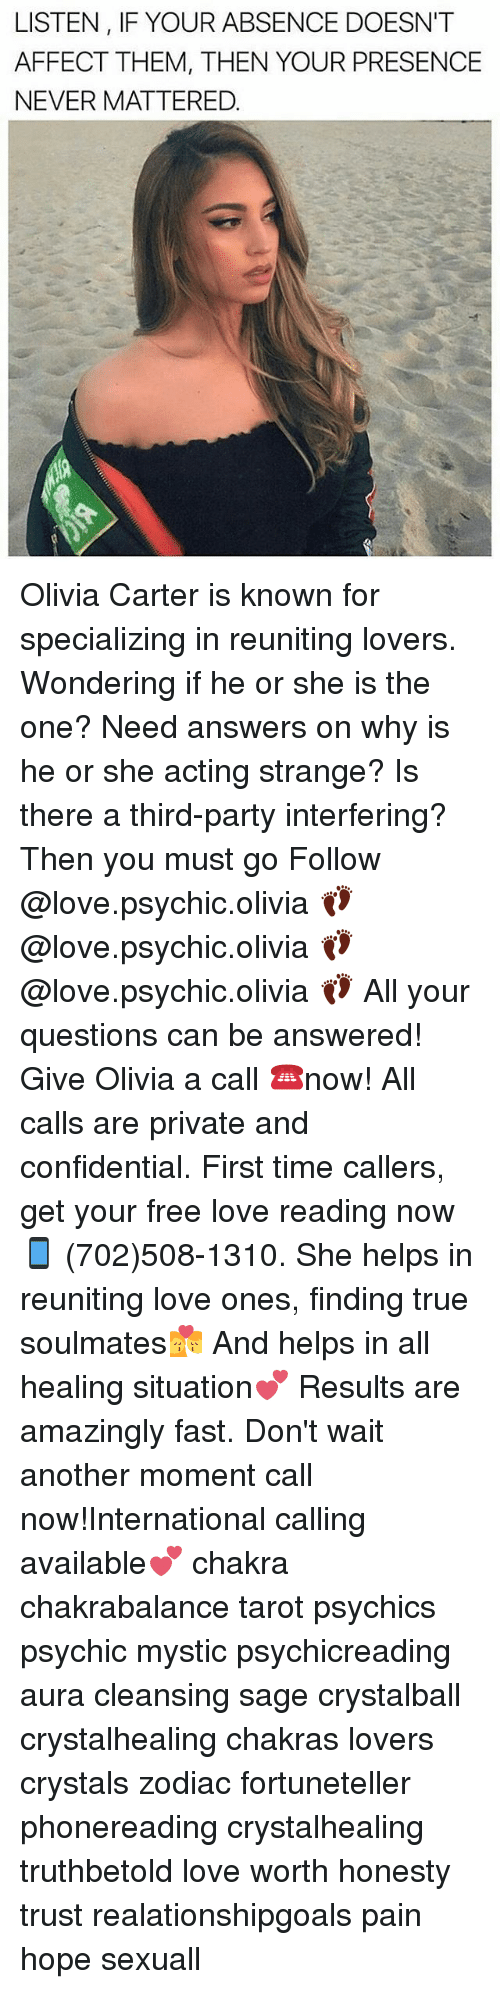 Love, Memes, and Party: LISTEN, IF YOUR ABSENCE DOESN'T  AFFECT THEM, THEN YOUR PRESENCE  NEVER MATTERED. Olivia Carter is known for specializing in reuniting lovers. Wondering if he or she is the one? Need answers on why is he or she acting strange? Is there a third-party interfering? Then you must go Follow @love.psychic.olivia 👣 @love.psychic.olivia 👣 @love.psychic.olivia 👣 All your questions can be answered! Give Olivia a call ☎️now! All calls are private and confidential. First time callers, get your free love reading now 📱 (702)508-1310. She helps in reuniting love ones, finding true soulmates💏 And helps in all healing situation💕 Results are amazingly fast. Don't wait another moment call now!International calling available💕 chakra chakrabalance tarot psychics psychic mystic psychicreading aura cleansing sage crystalball crystalhealing chakras lovers crystals zodiac fortuneteller phonereading crystalhealing truthbetold love worth honesty trust realationshipgoals pain hope sexuall